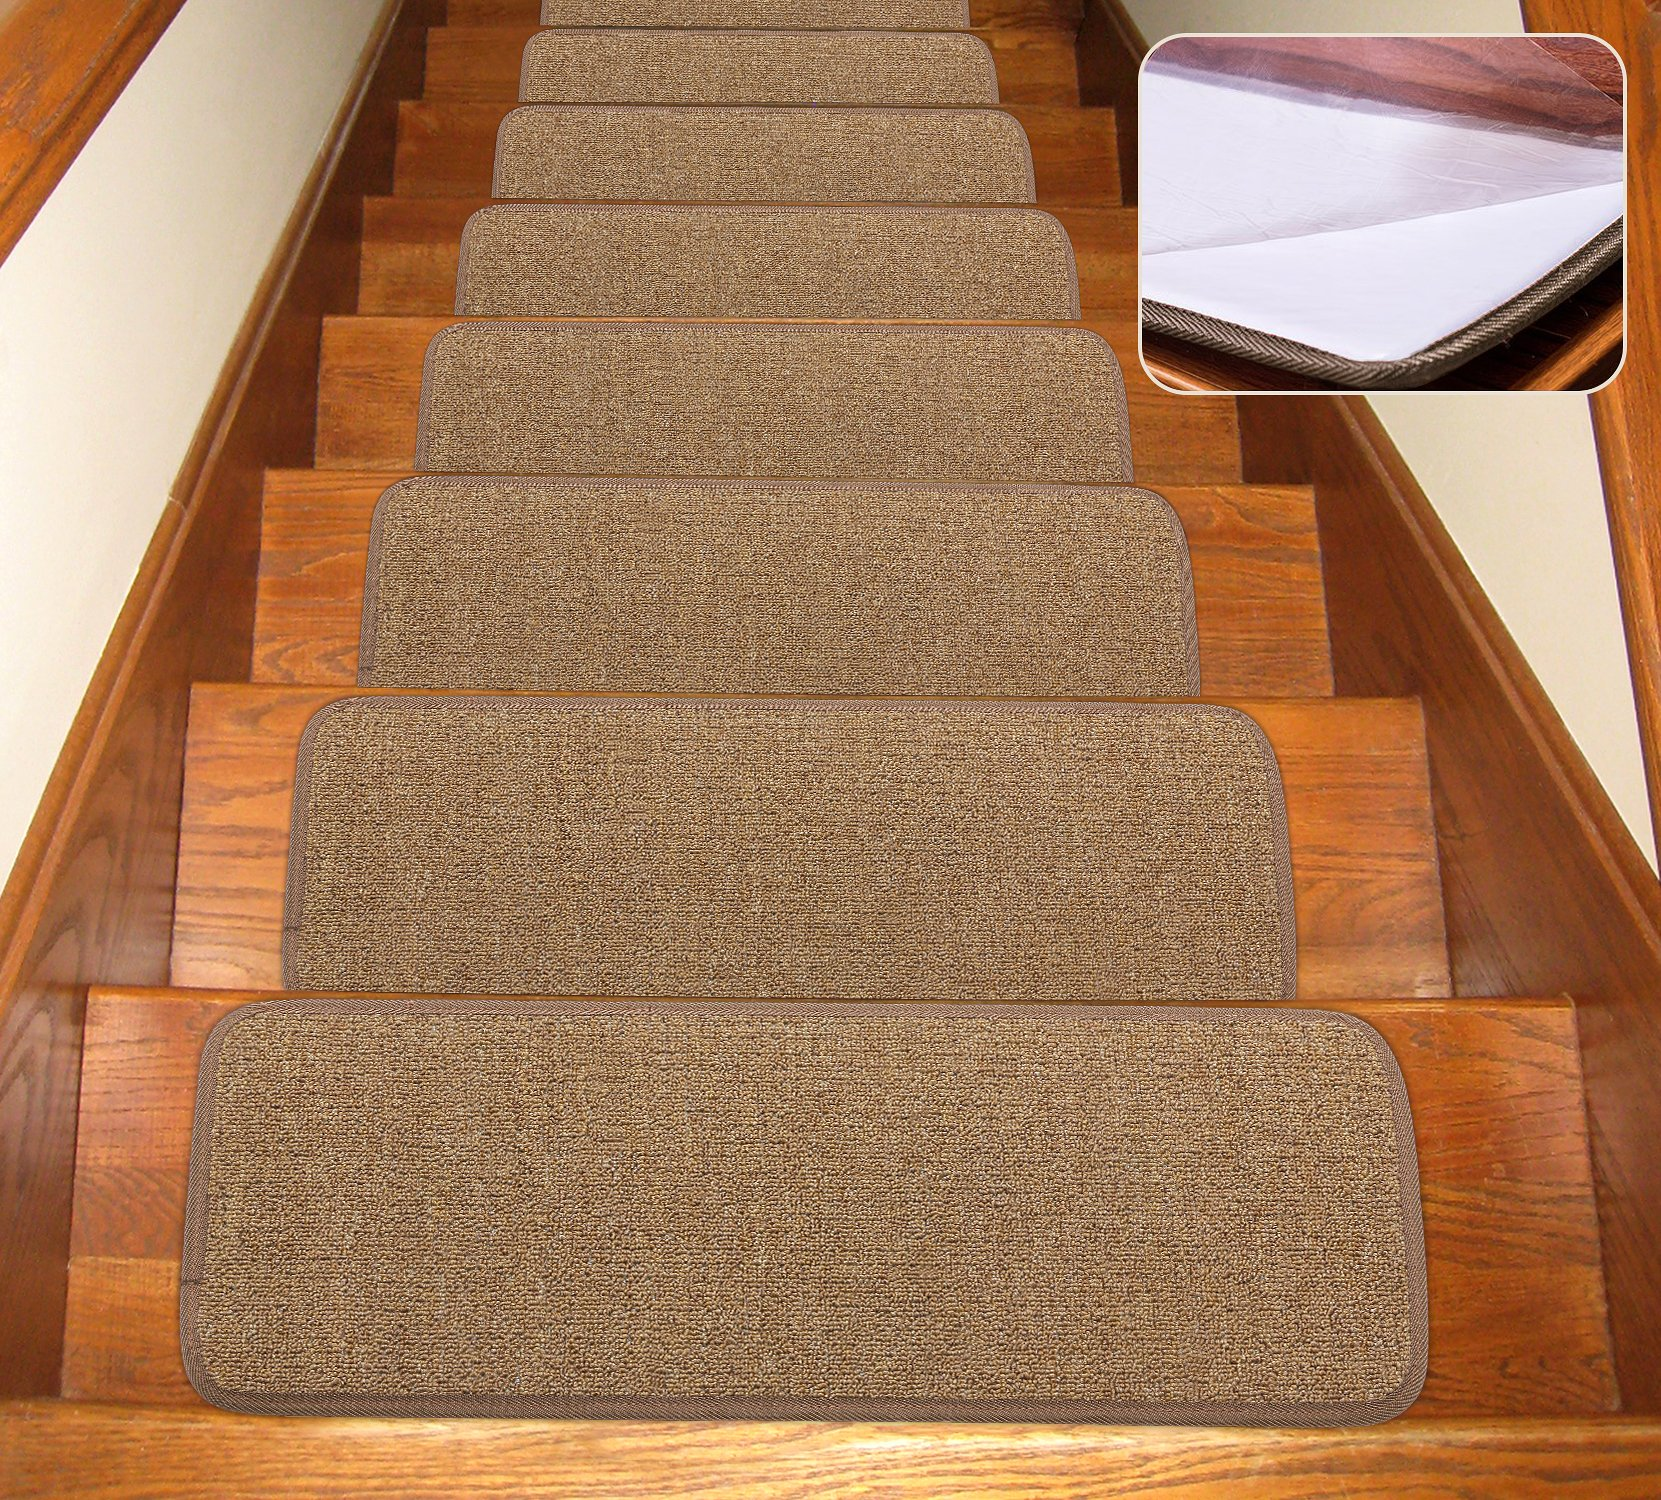 Soloom Non-Slip Stair Treads Carpet with Skid Resistant Rubber Backing Specialized for Indoor Wooden Steps, Removable Floor Rugs for Stairs(Brown set of 13,25.5×9.5In)